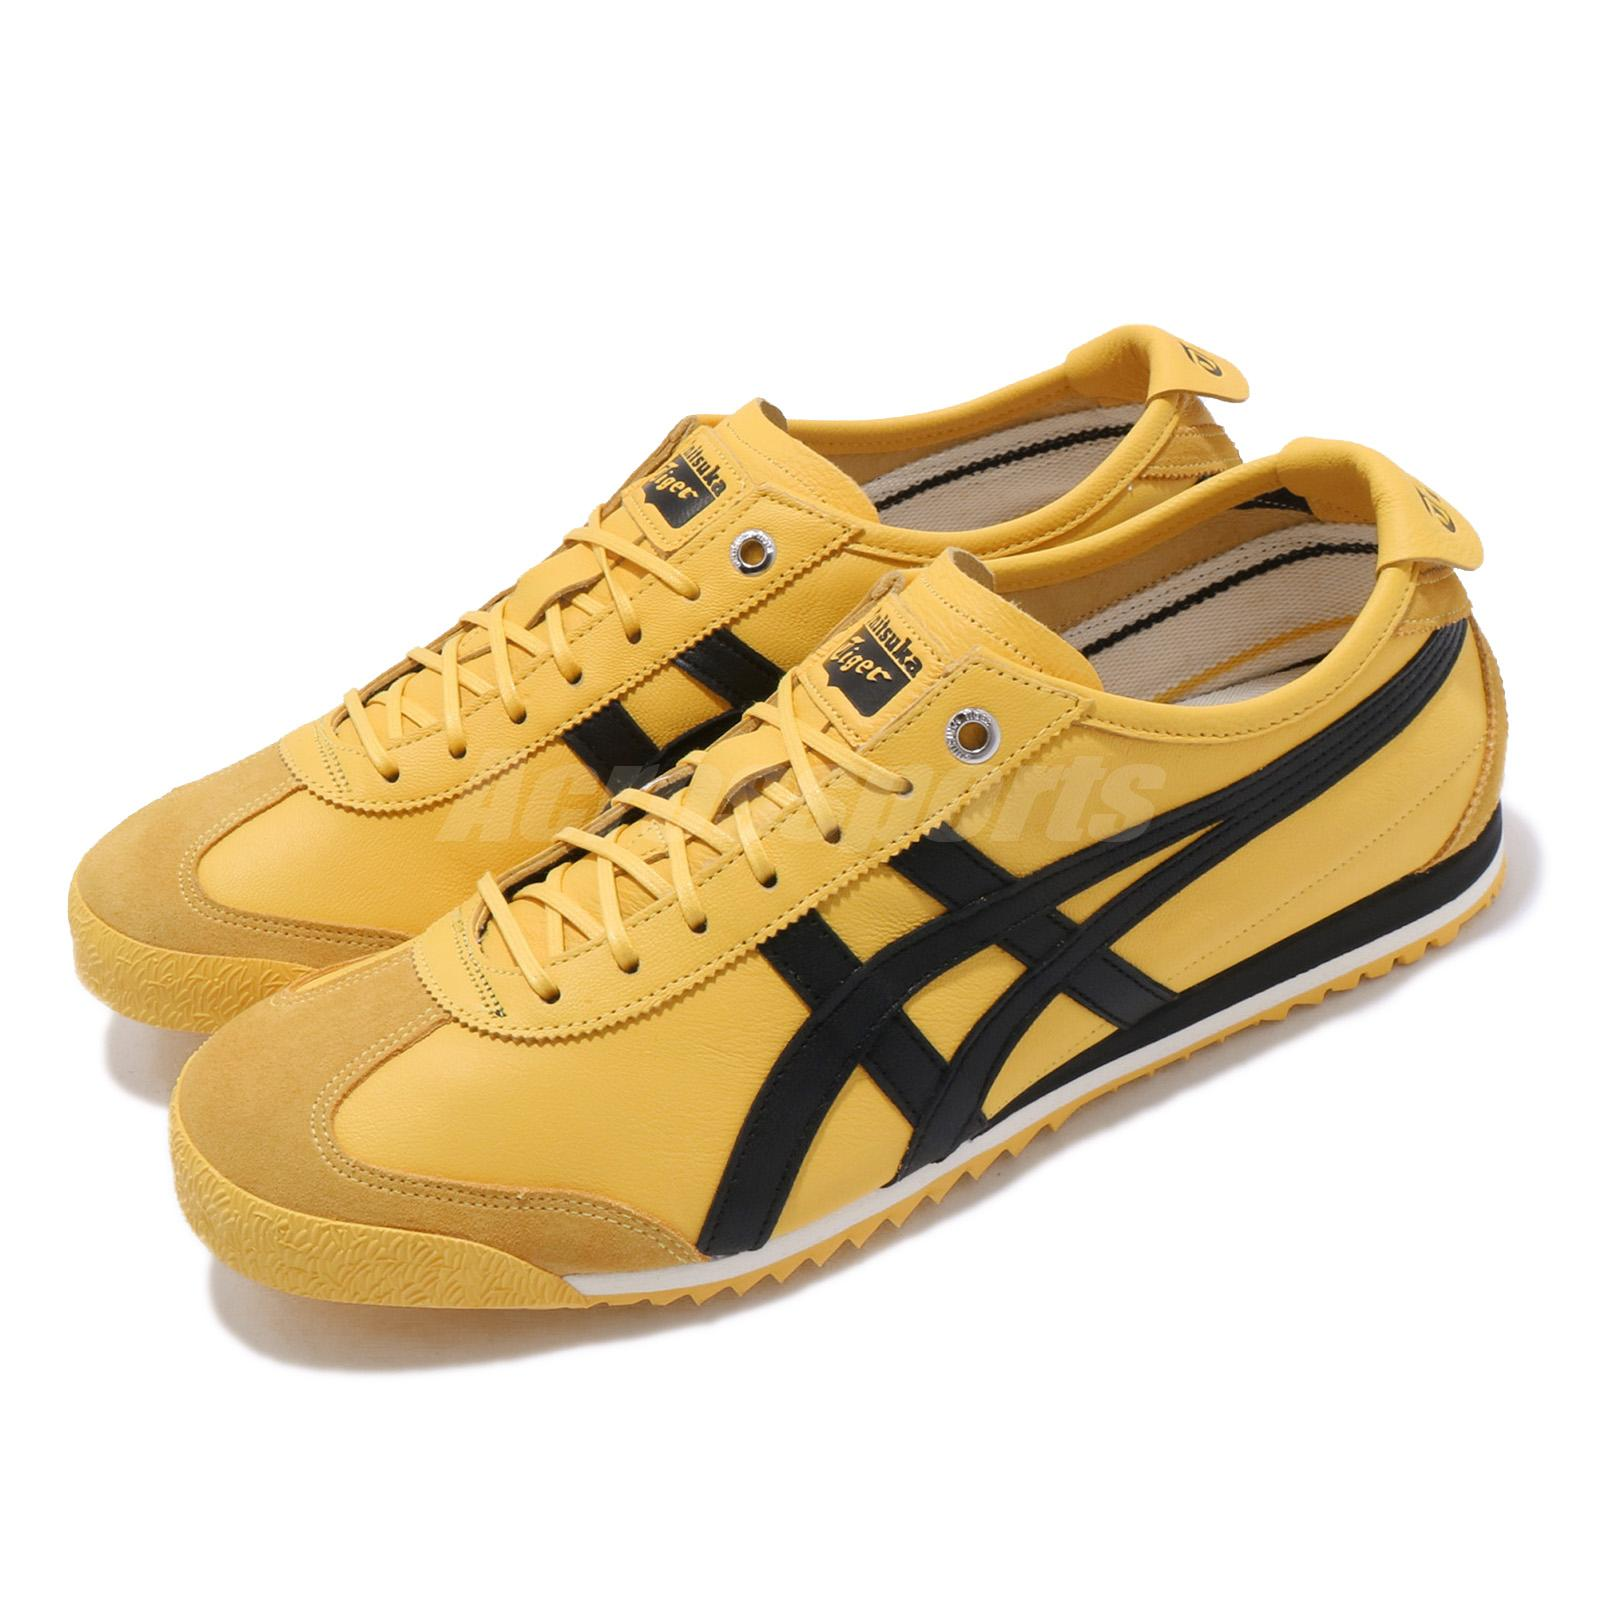 best service 0afac cce5d Details about Asics Onitsuka Tiger Mexico 66 SD Tai-Chi Yellow Black Men  Shoes 1183A727-750